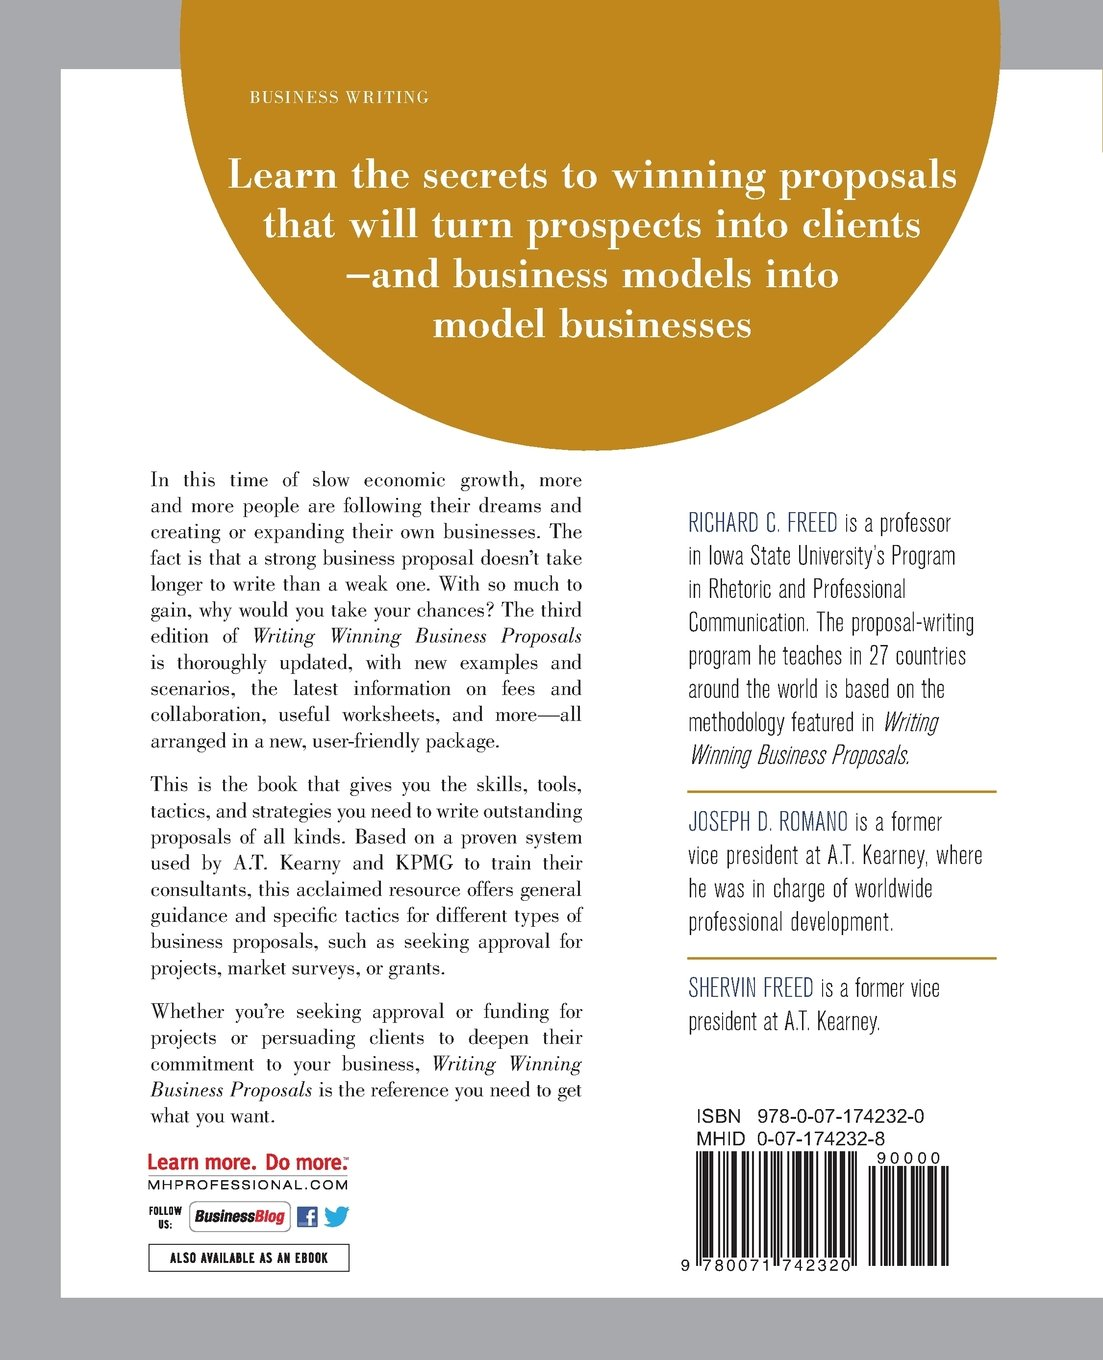 Writing winning business proposals third edition richard c freed writing winning business proposals third edition richard c freed shervin freed joe romano 9780071742320 amazon books fandeluxe